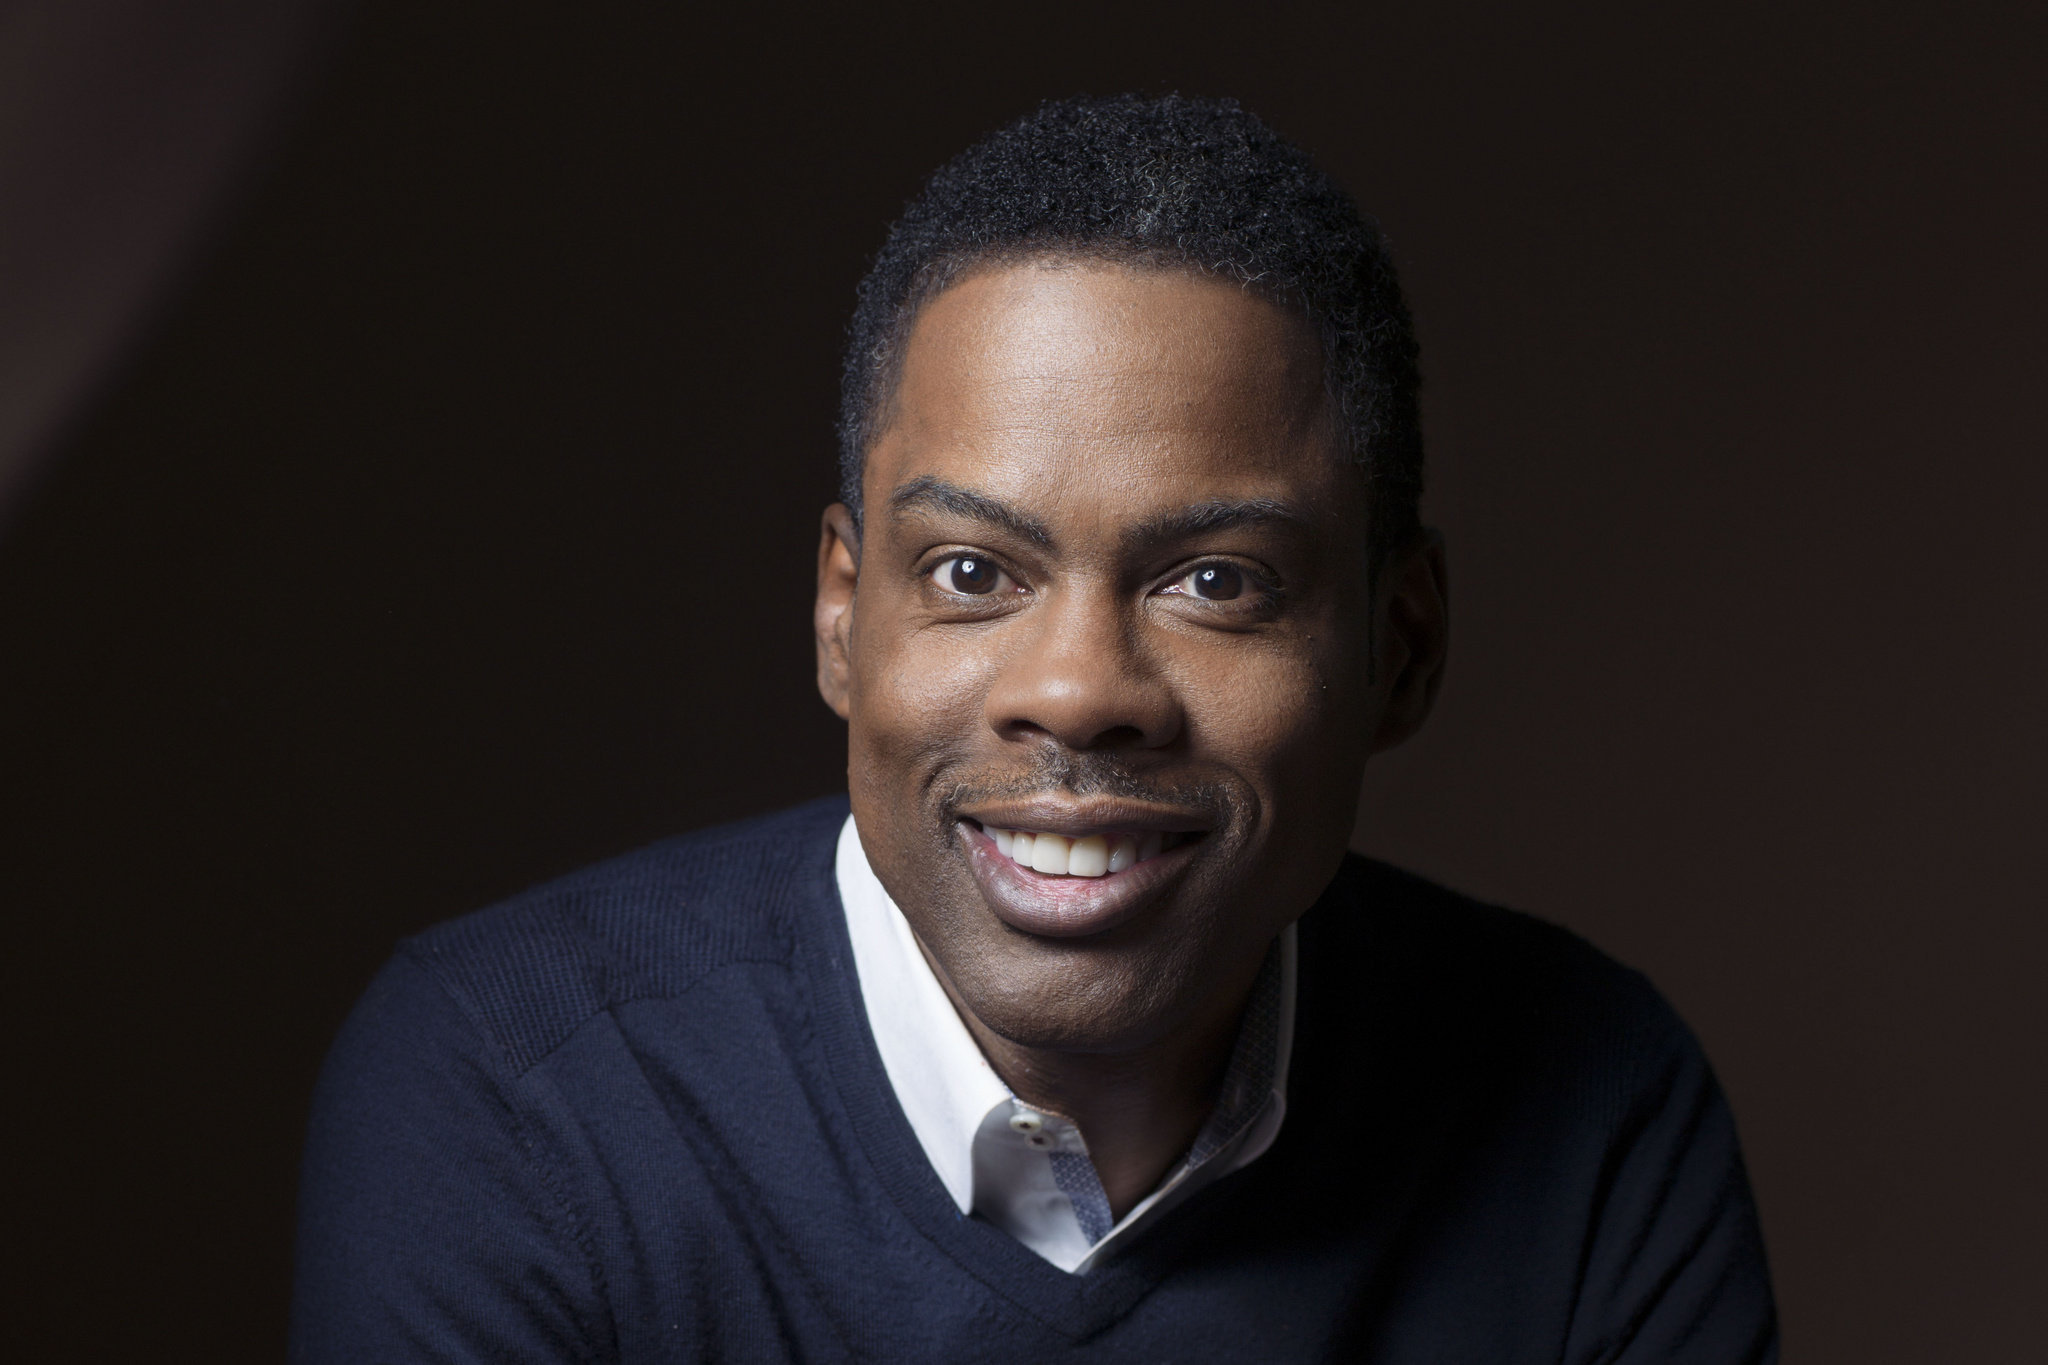 Chris Rock Wallpapers Images Photos Pictures Backgrounds 2048x1365